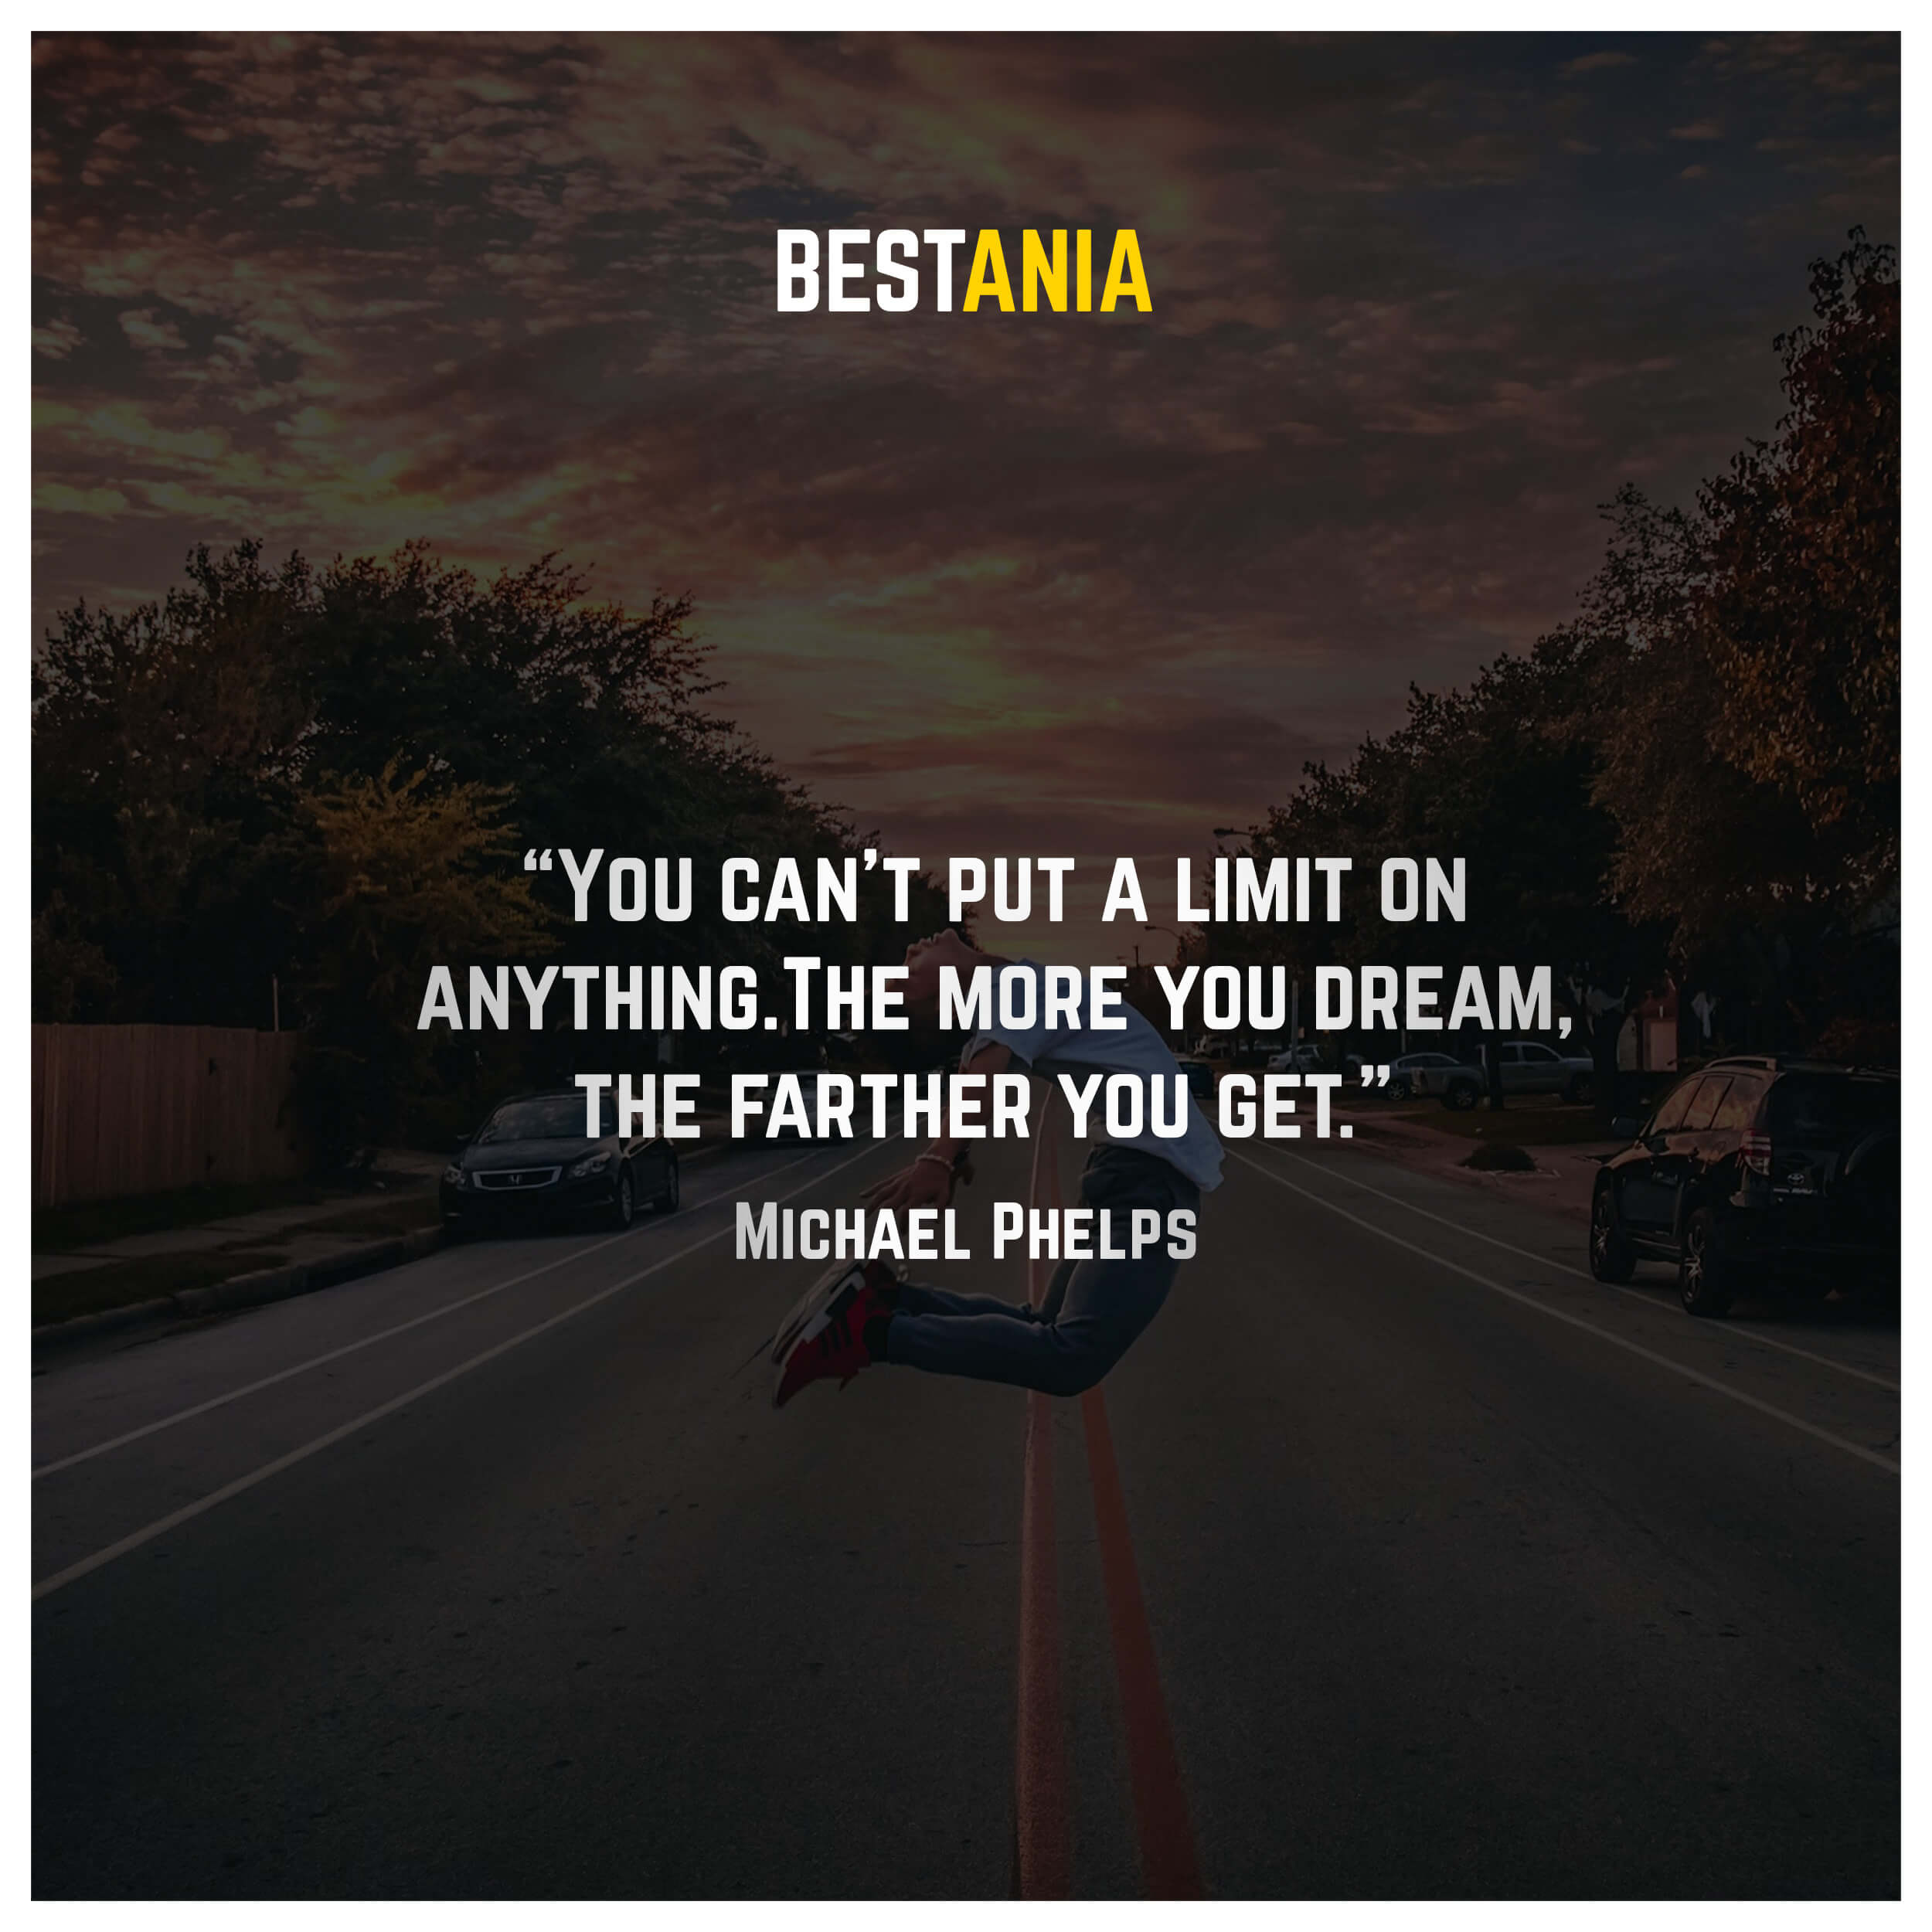 """You can't put a limit on anything. The more you dream, the farther you get."" – Michael Phelps"